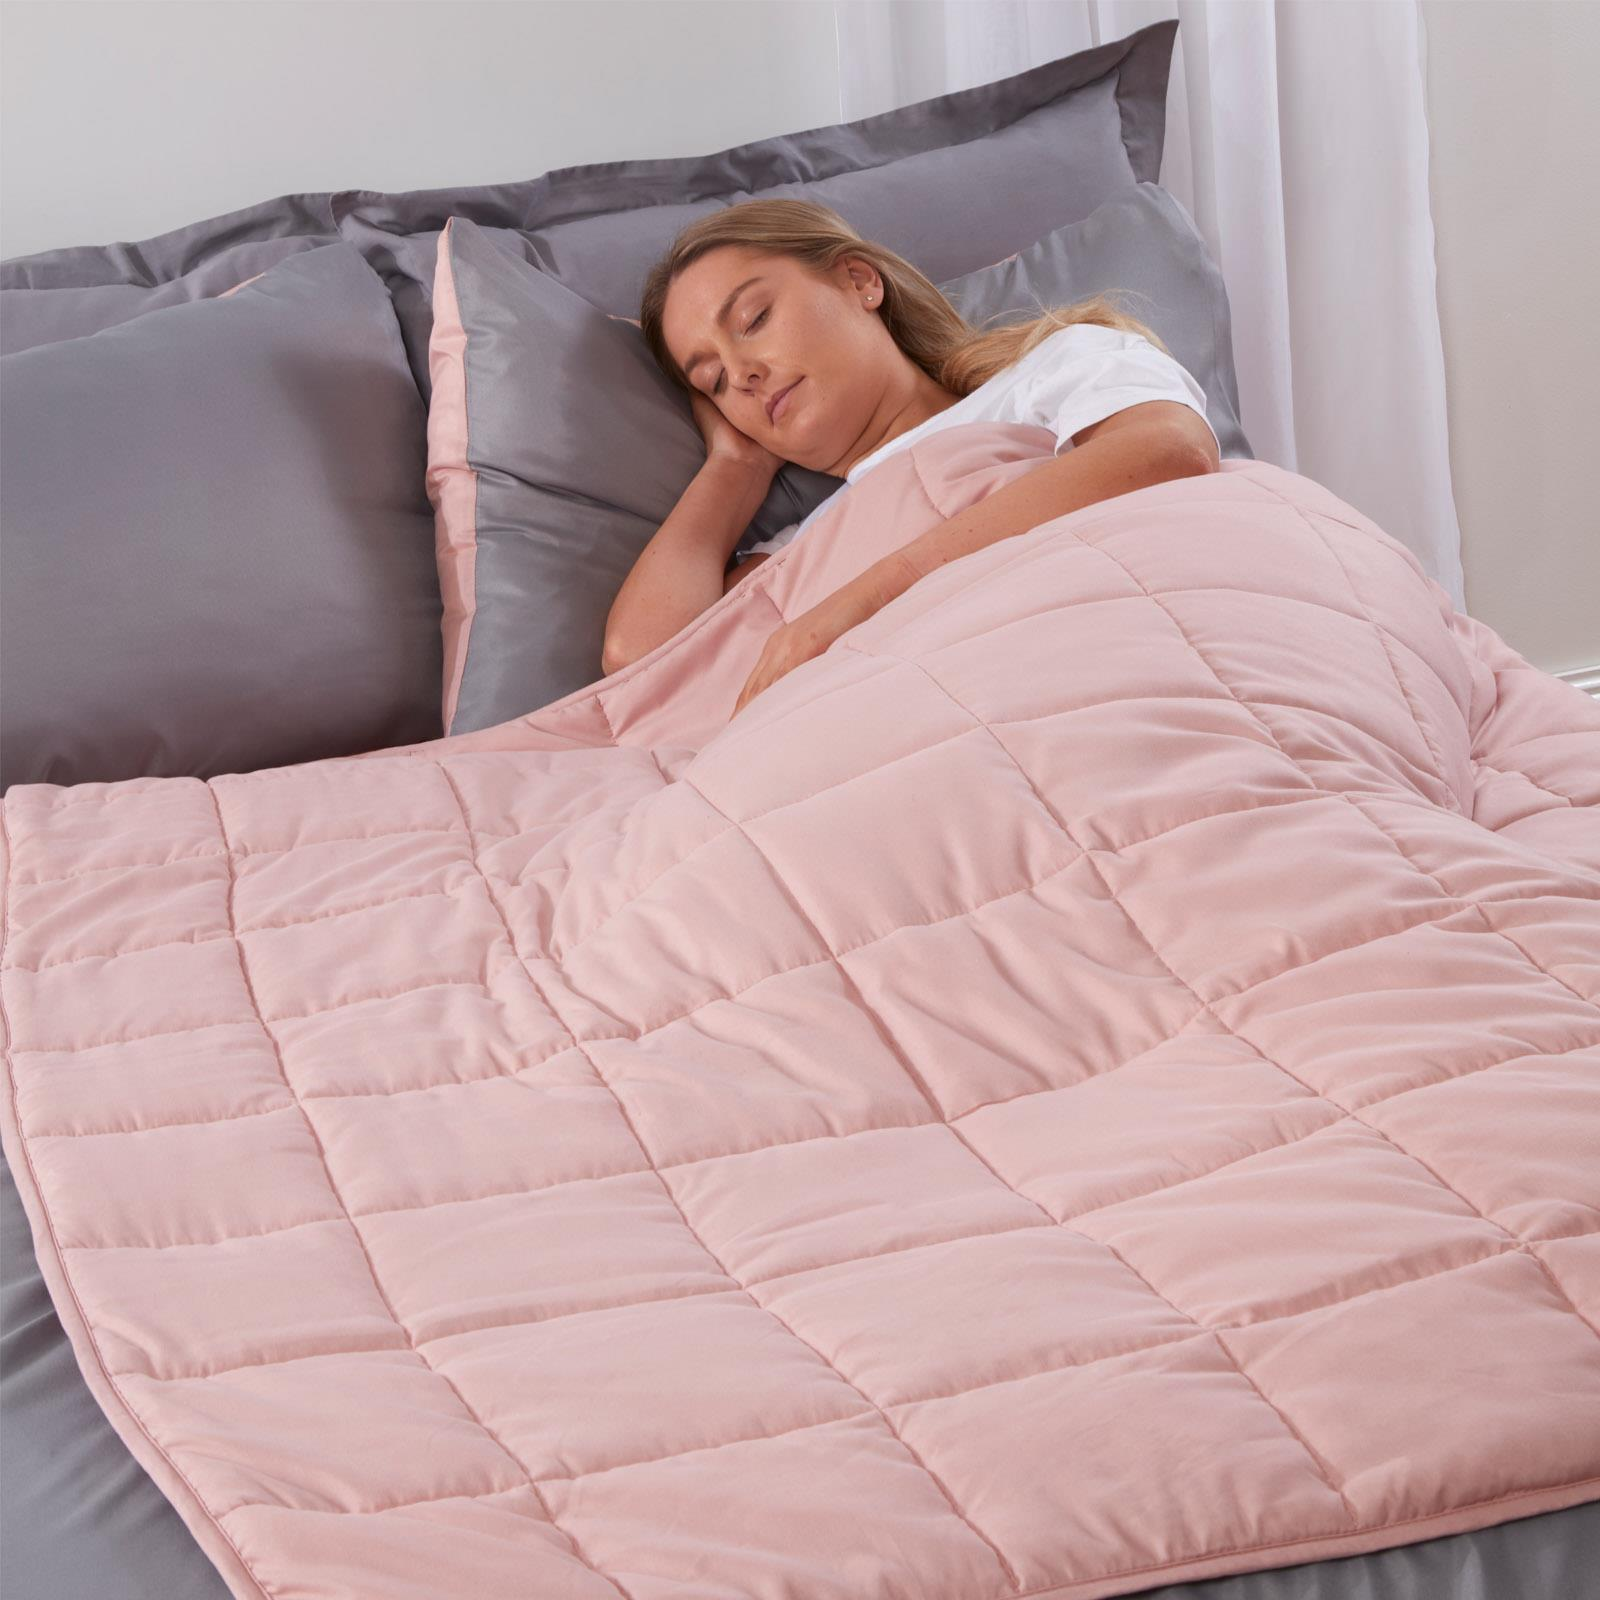 Brentfords-Weighted-Blanket-Sensory-Sleep-Therapy-Anxiety-Kids-Adults-Blush-Grey thumbnail 6